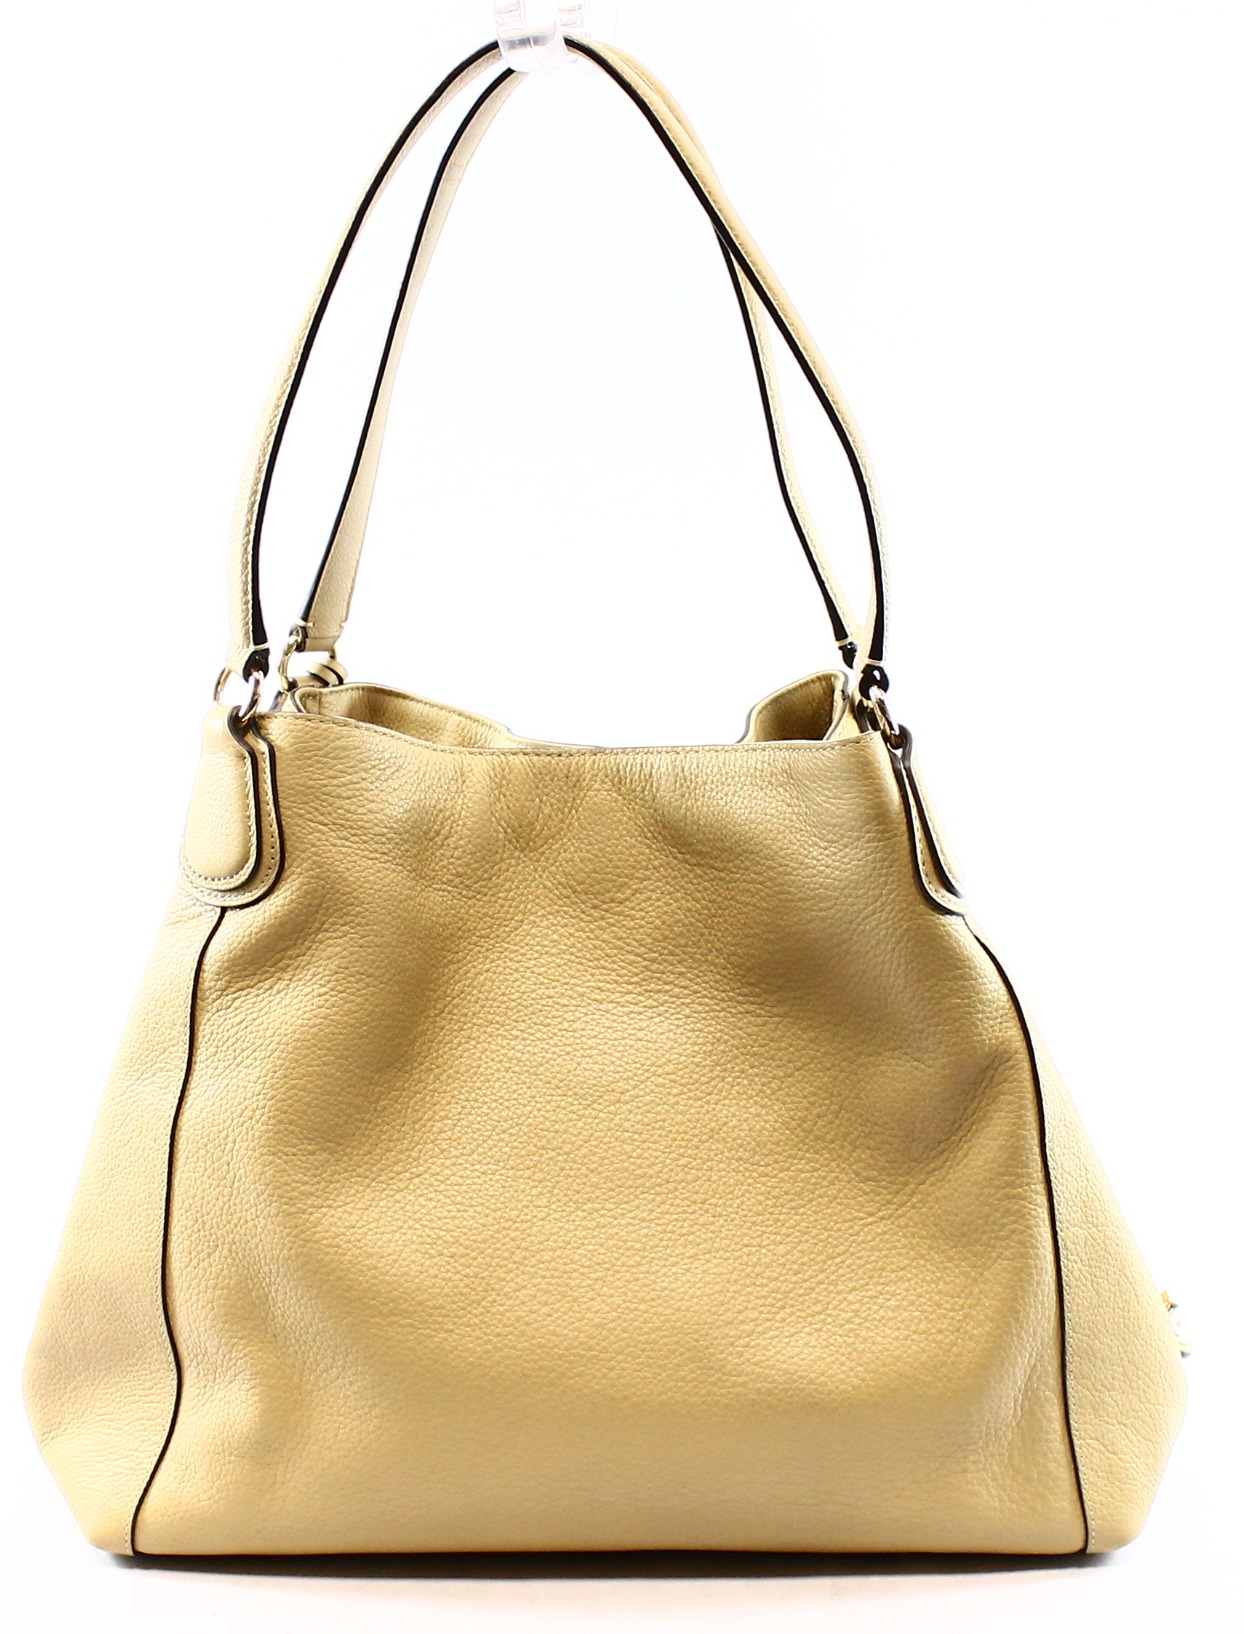 coach handbag outlet online store  every handbag